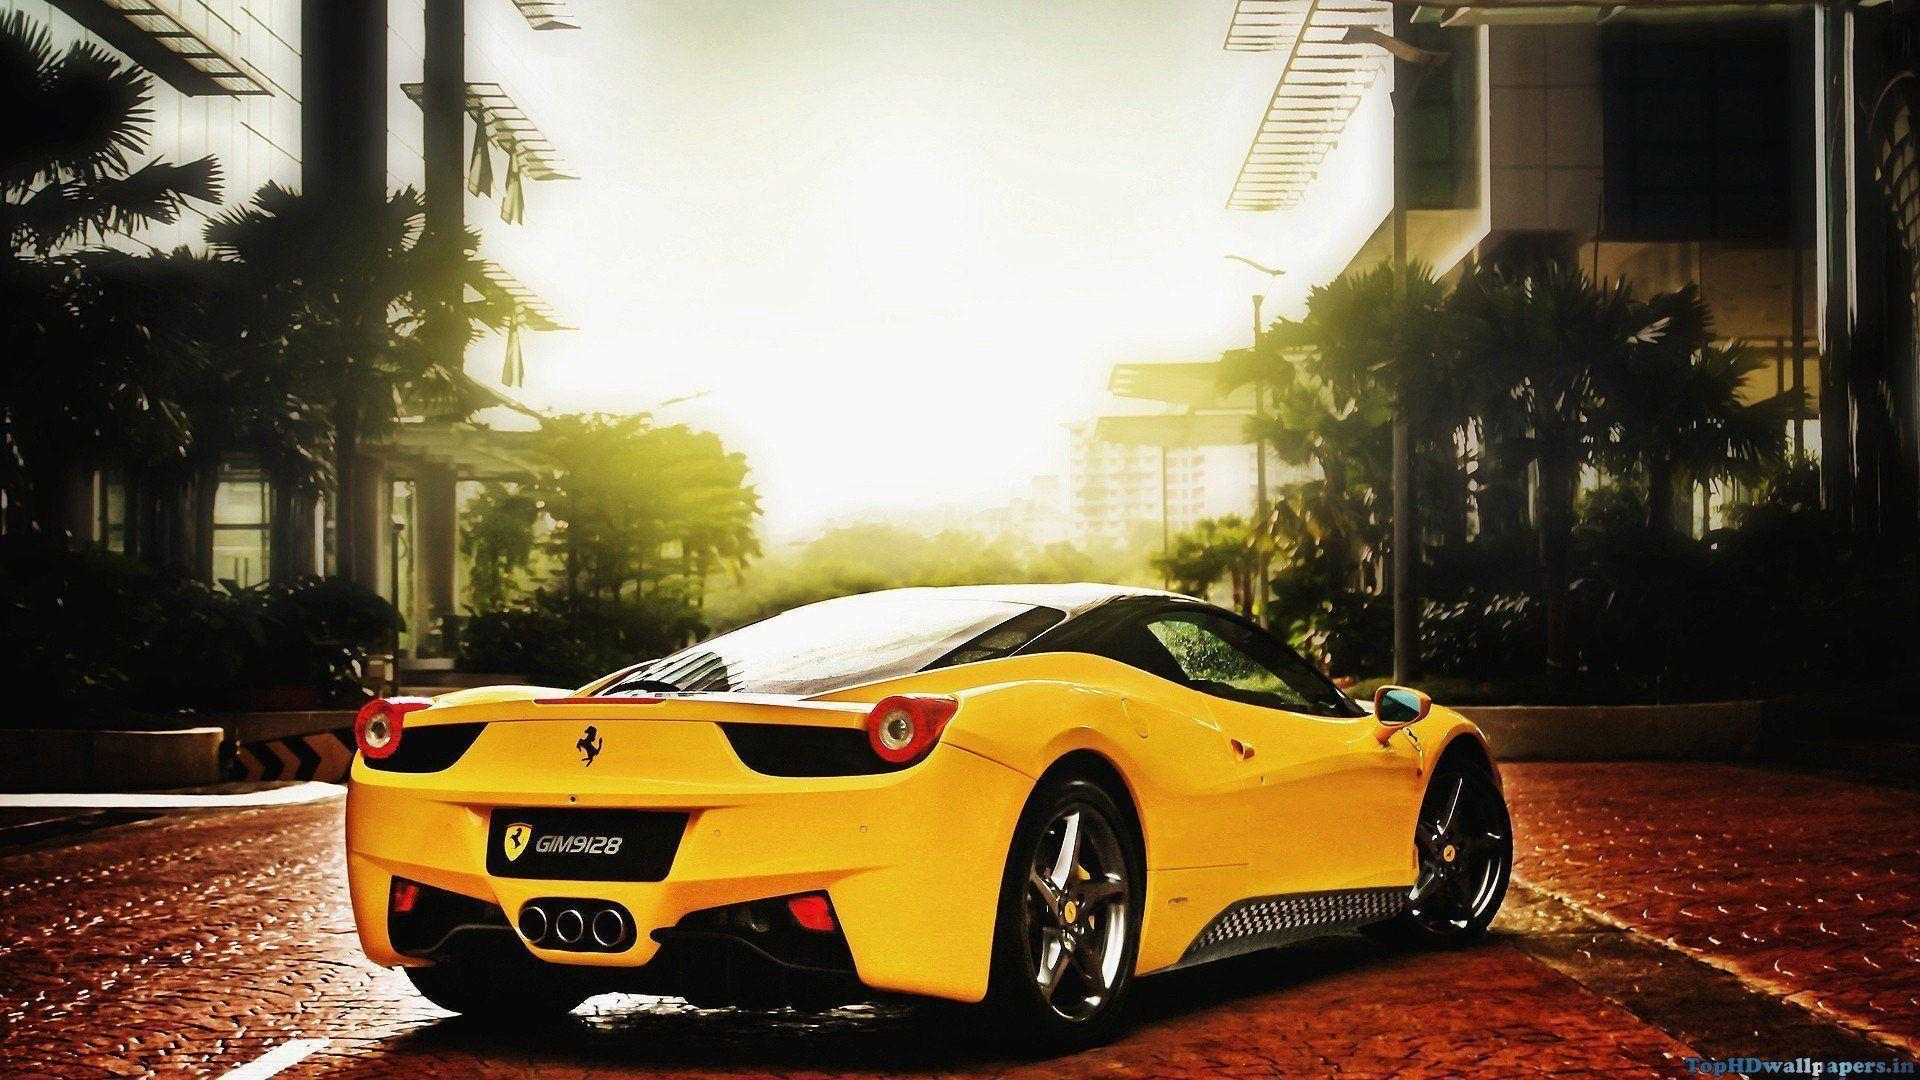 Ferrari Car Wallpapers Hd 1325 HD Wallpapers